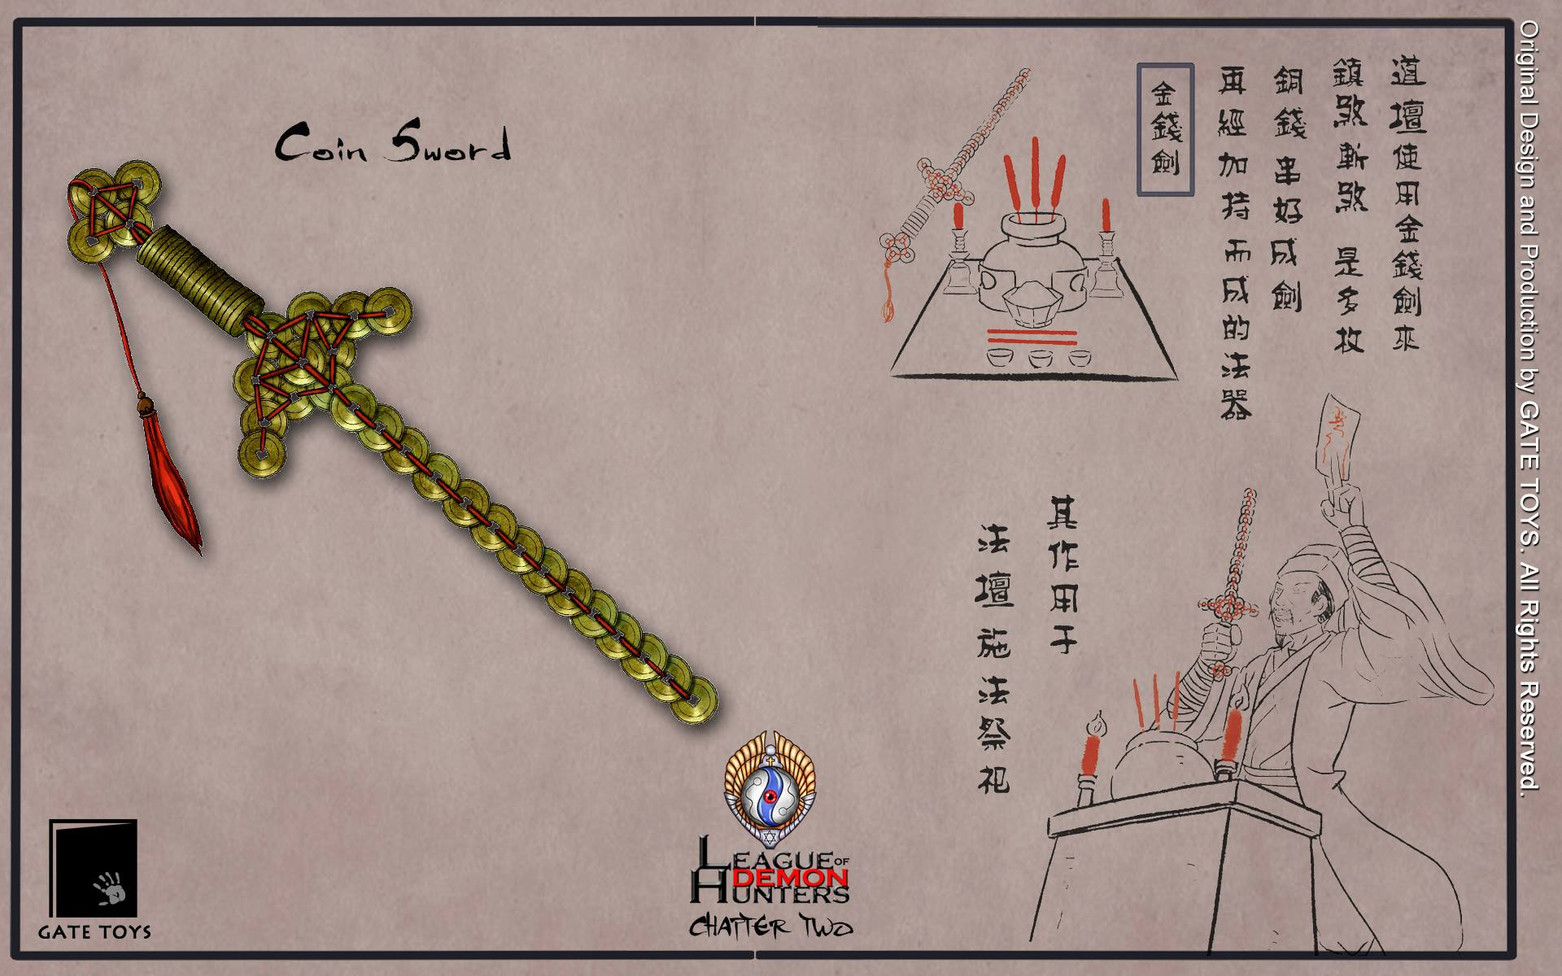 Coin Sword, a ceremonial sword made up of coins, can be used to dispel demons.